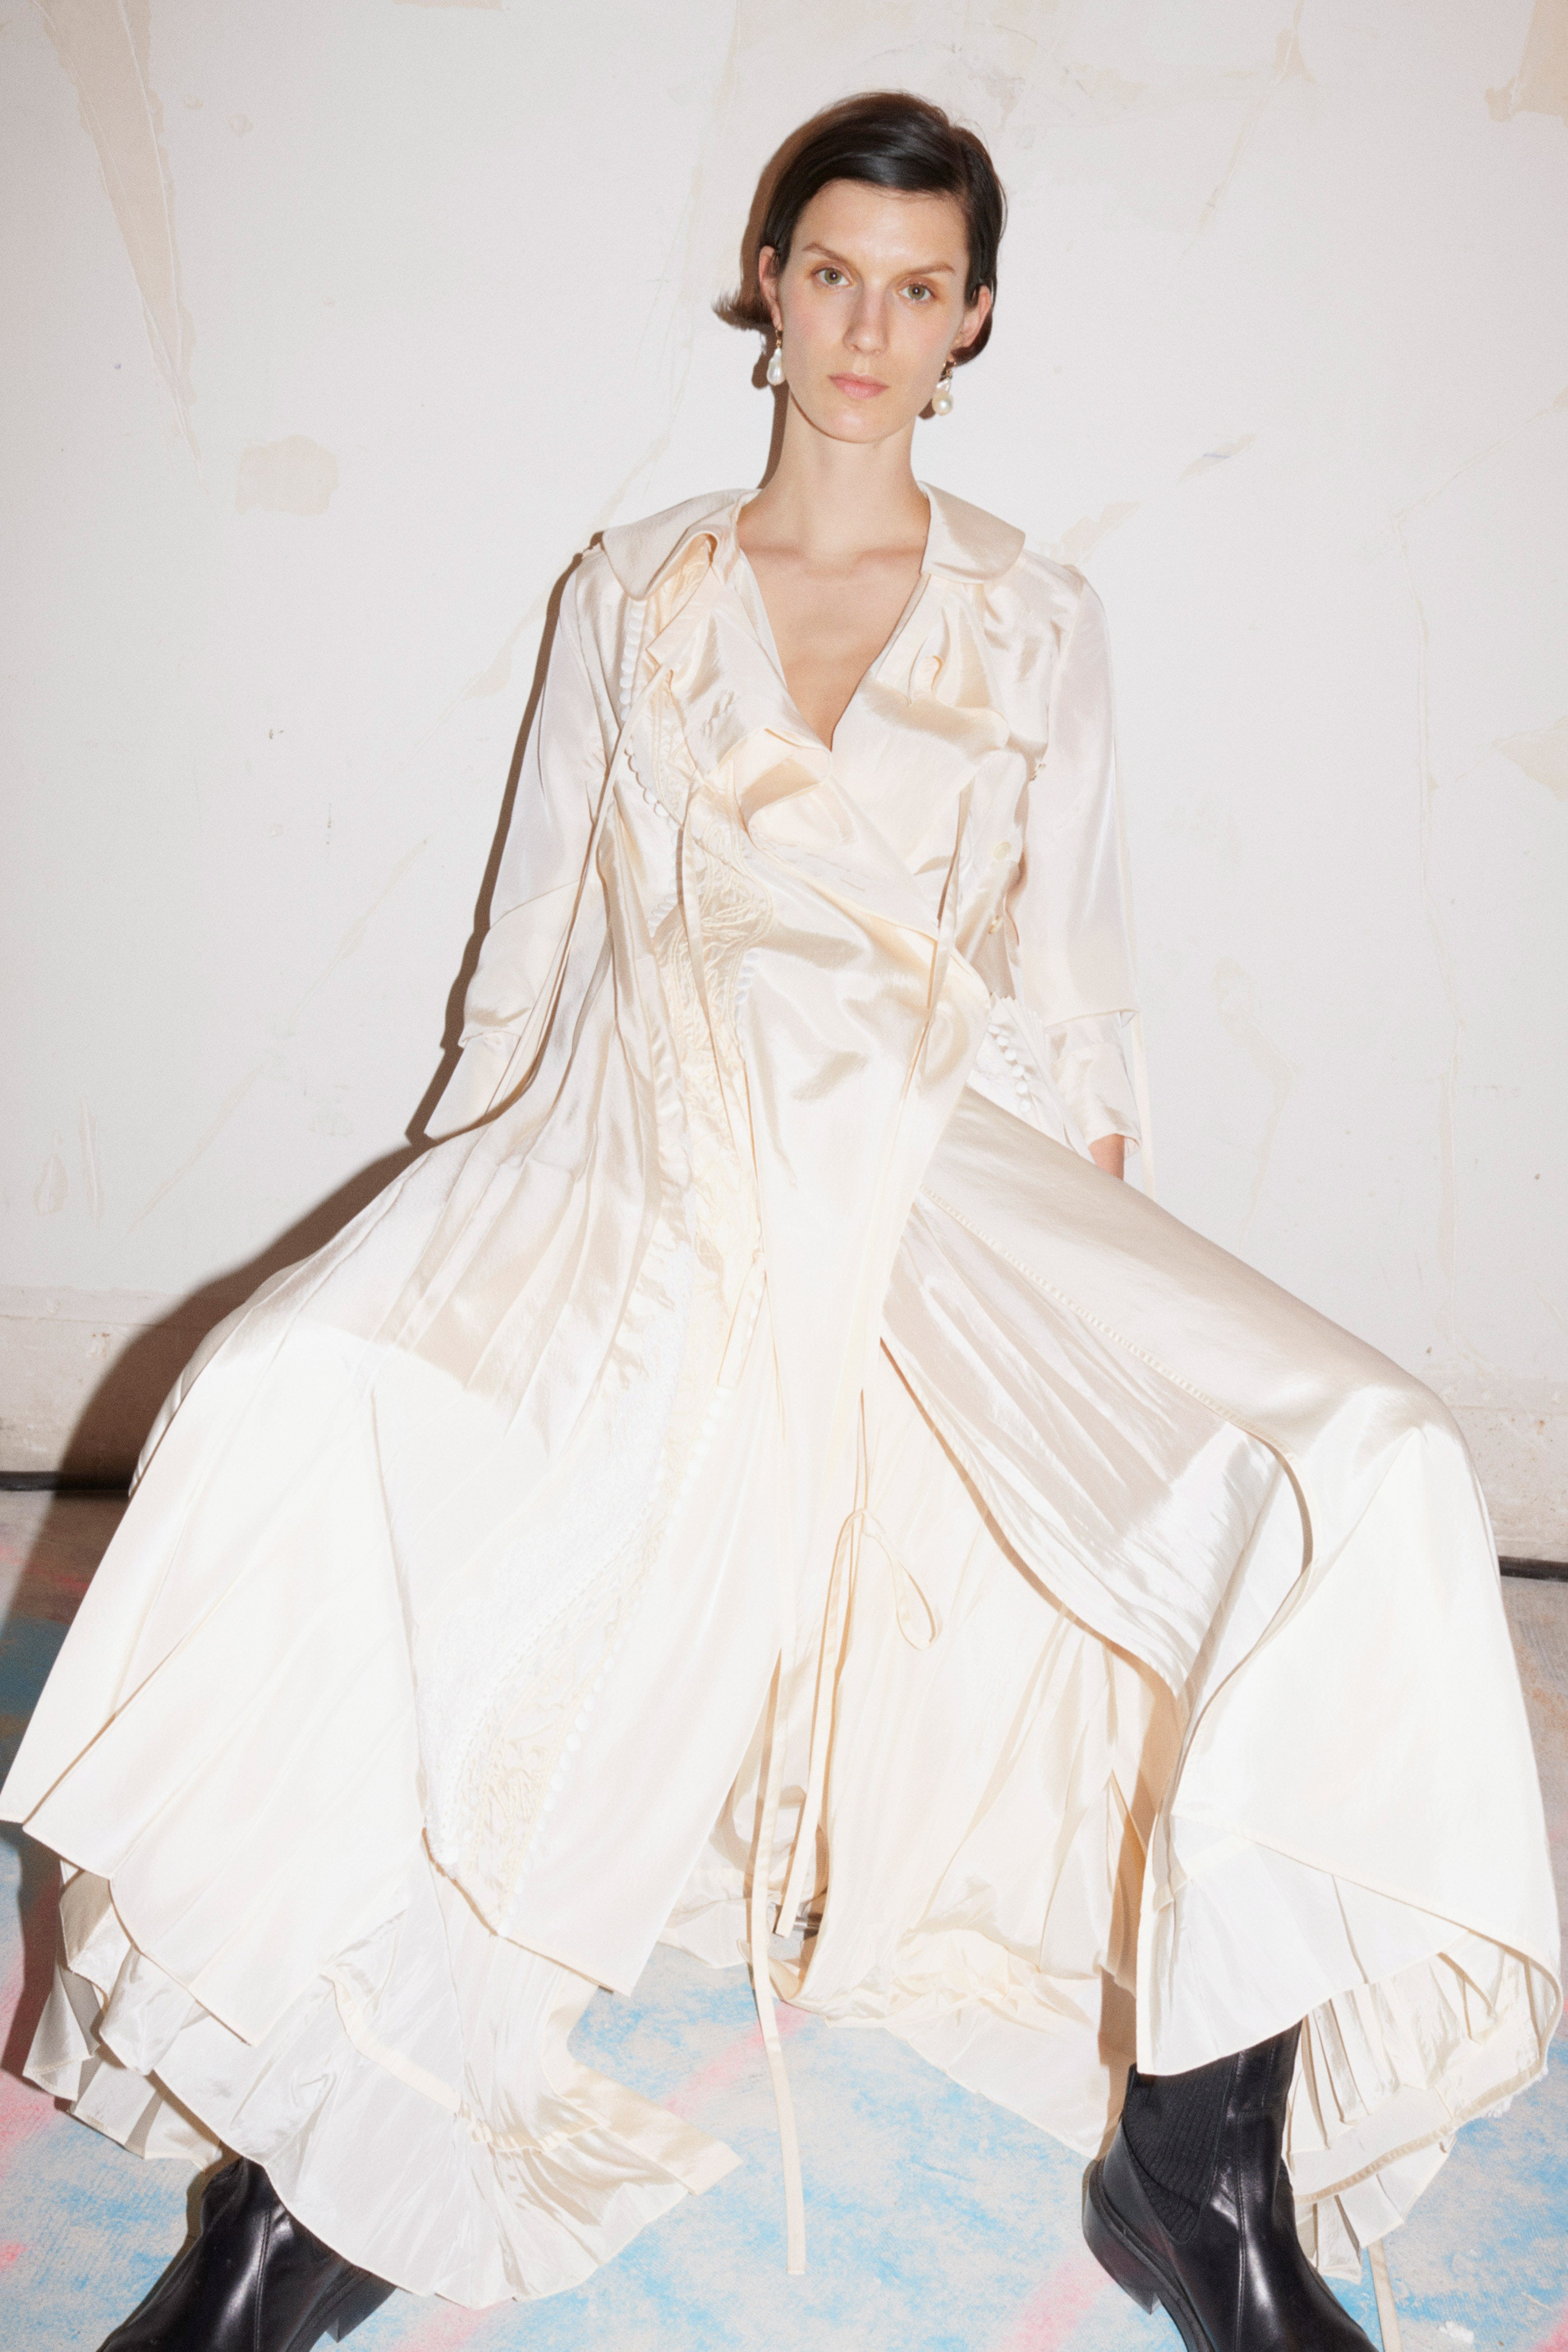 For walks in the fresh air: A seasonal collection of Jil Sander arrived at Asthik (photo 45)